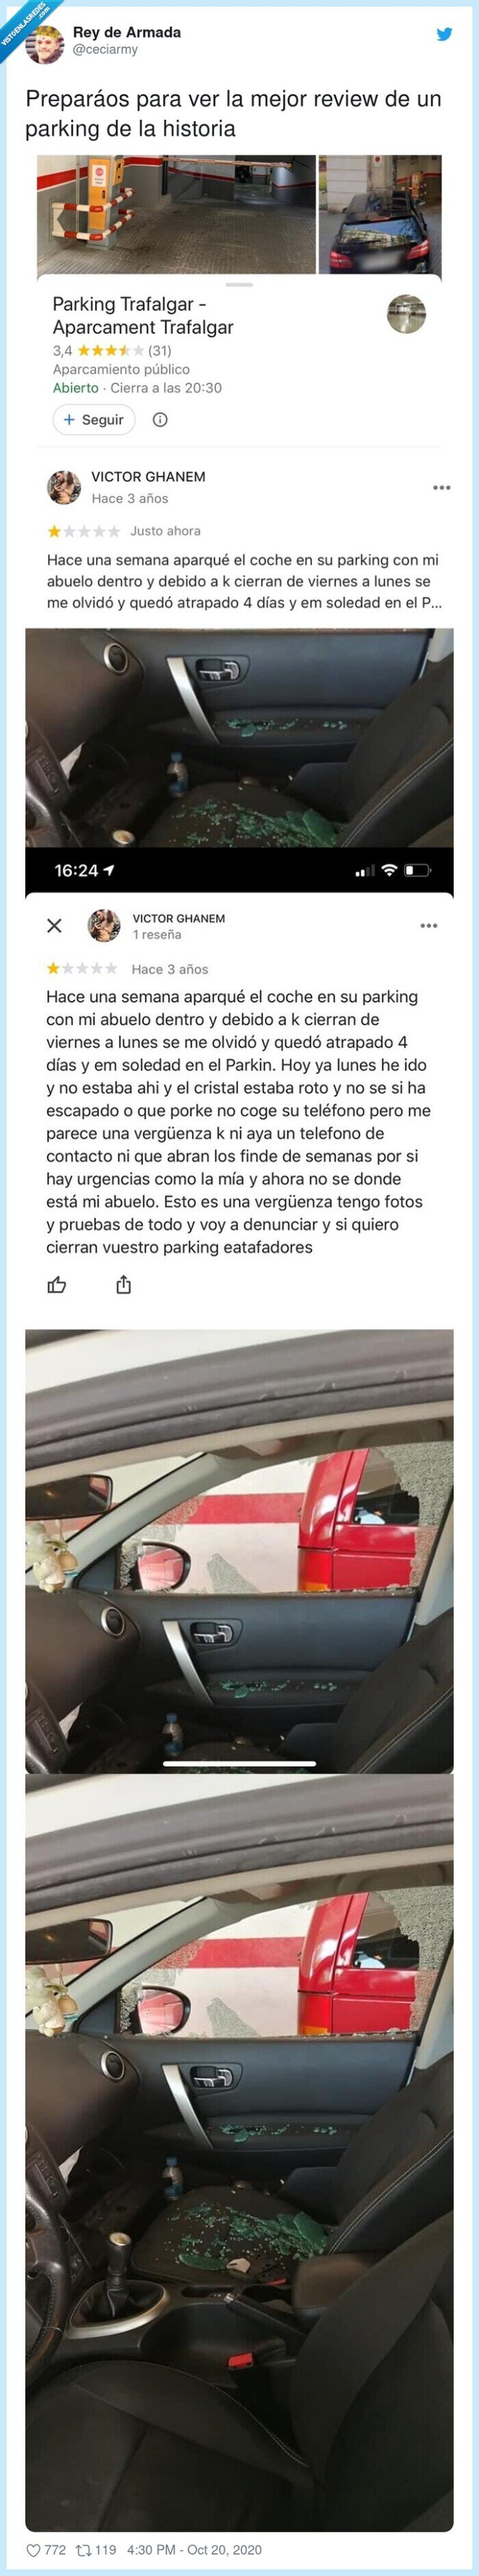 abuelo,parking,reseña,review